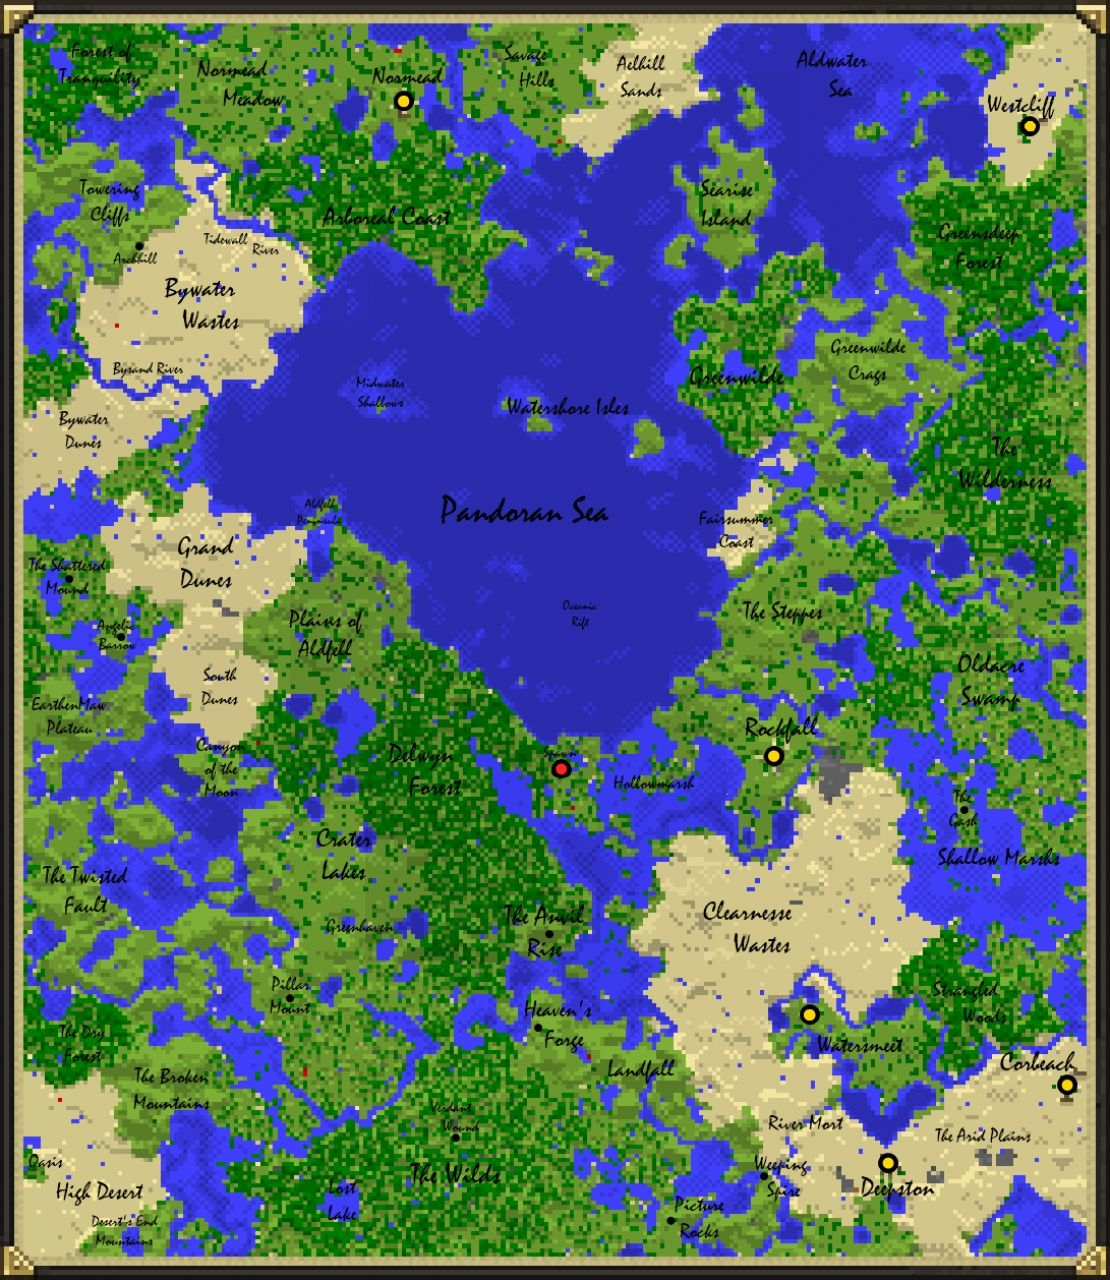 Avatar 2 Travel To Pandora: Pandora's Box. (Awesome World Seed + Detailed Map